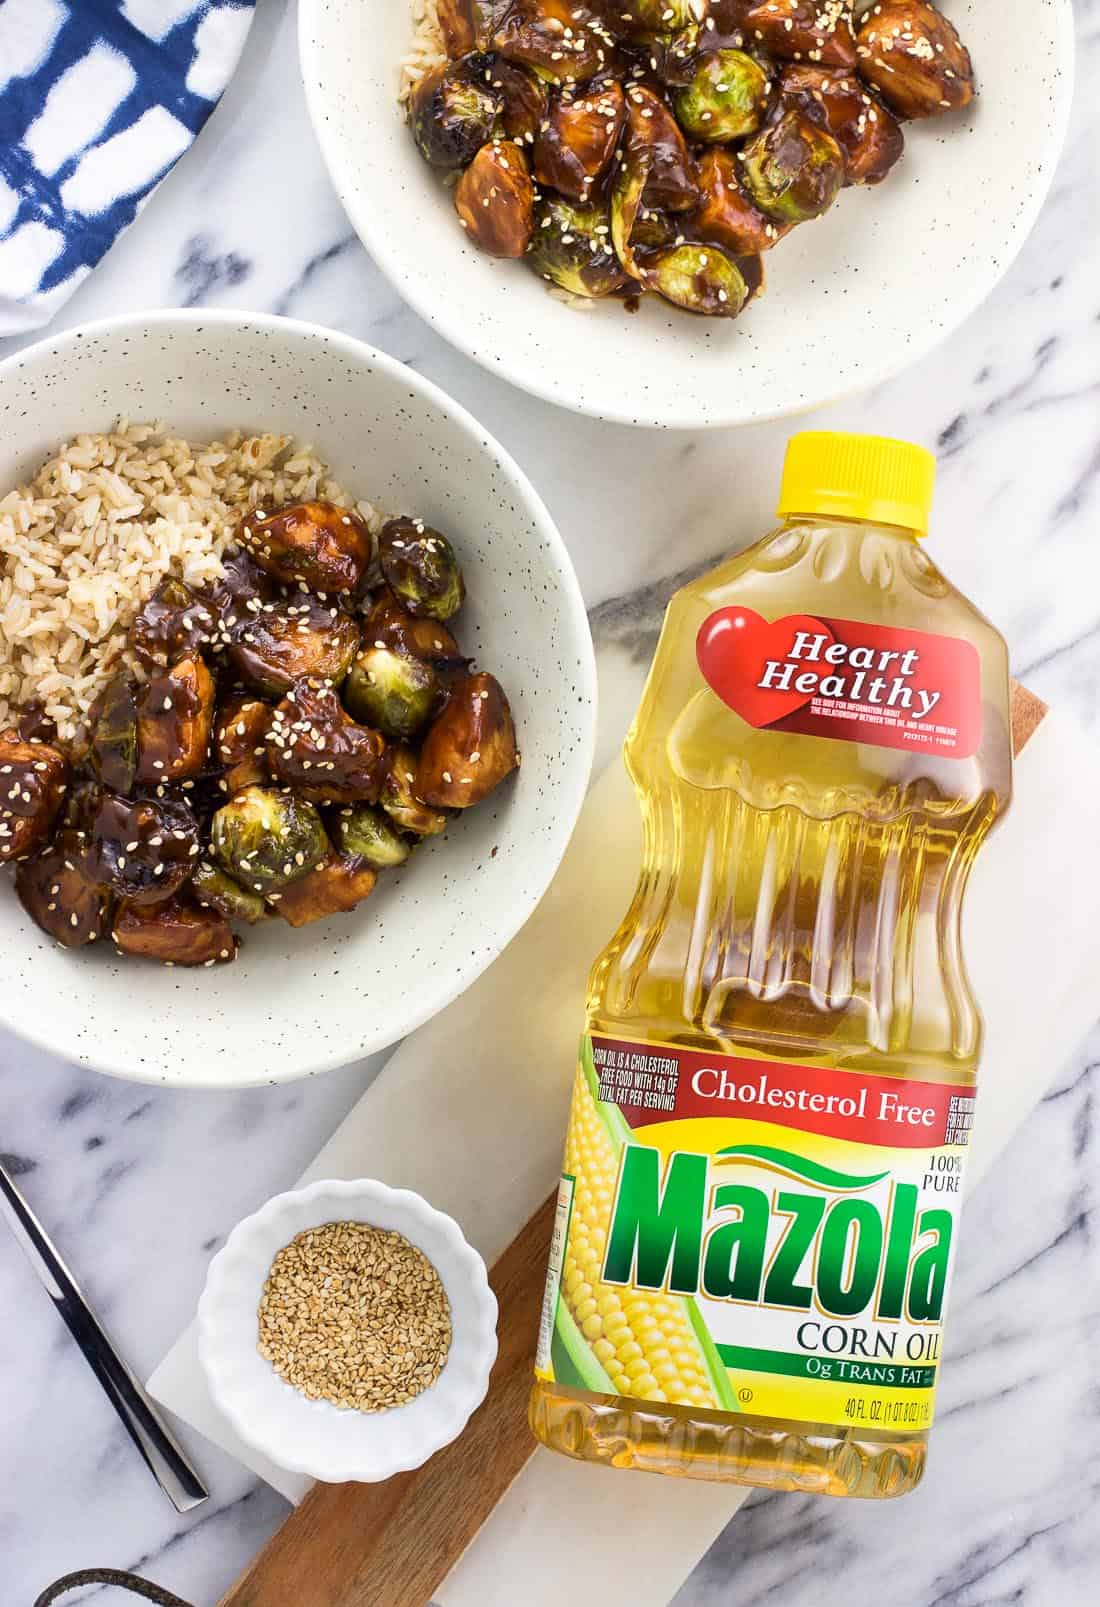 A bottle of Mazola corn oil next to two plates of chicken stir fry served with brown rice and a small bowl fo toasted sesame seeds